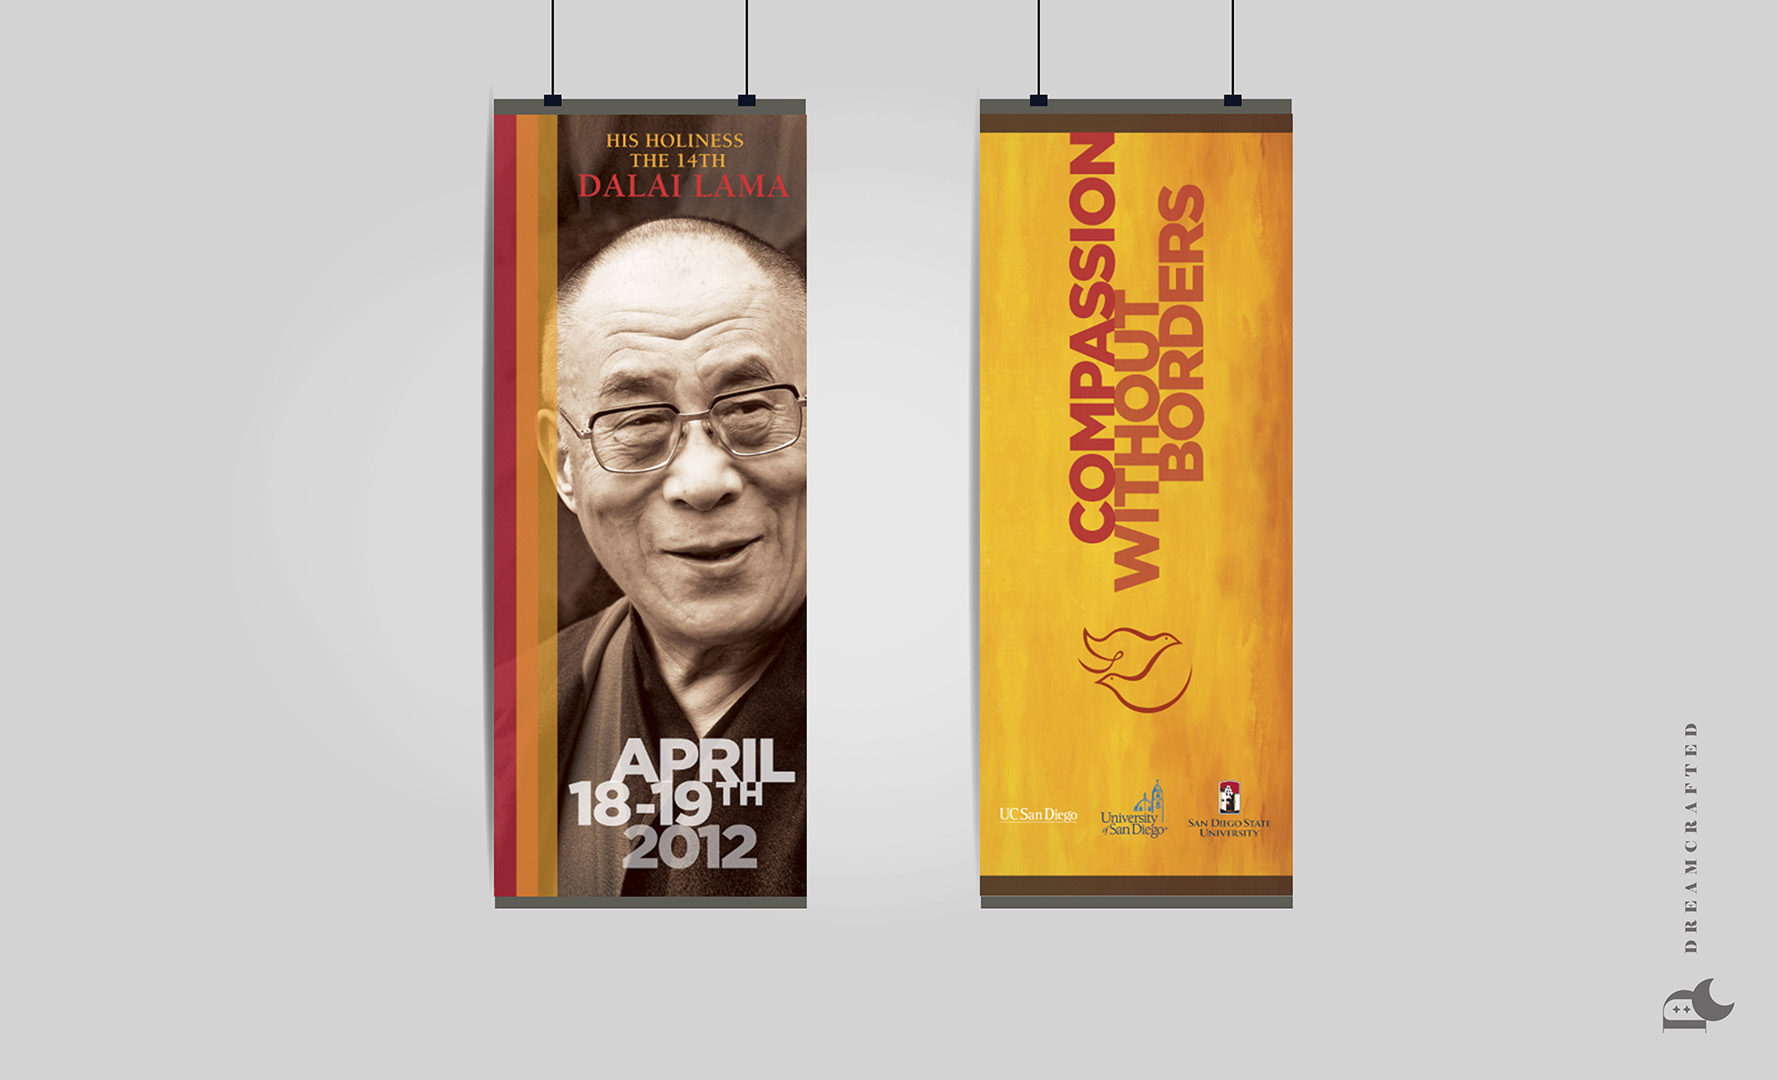 Dalai Lama Event Banners Display